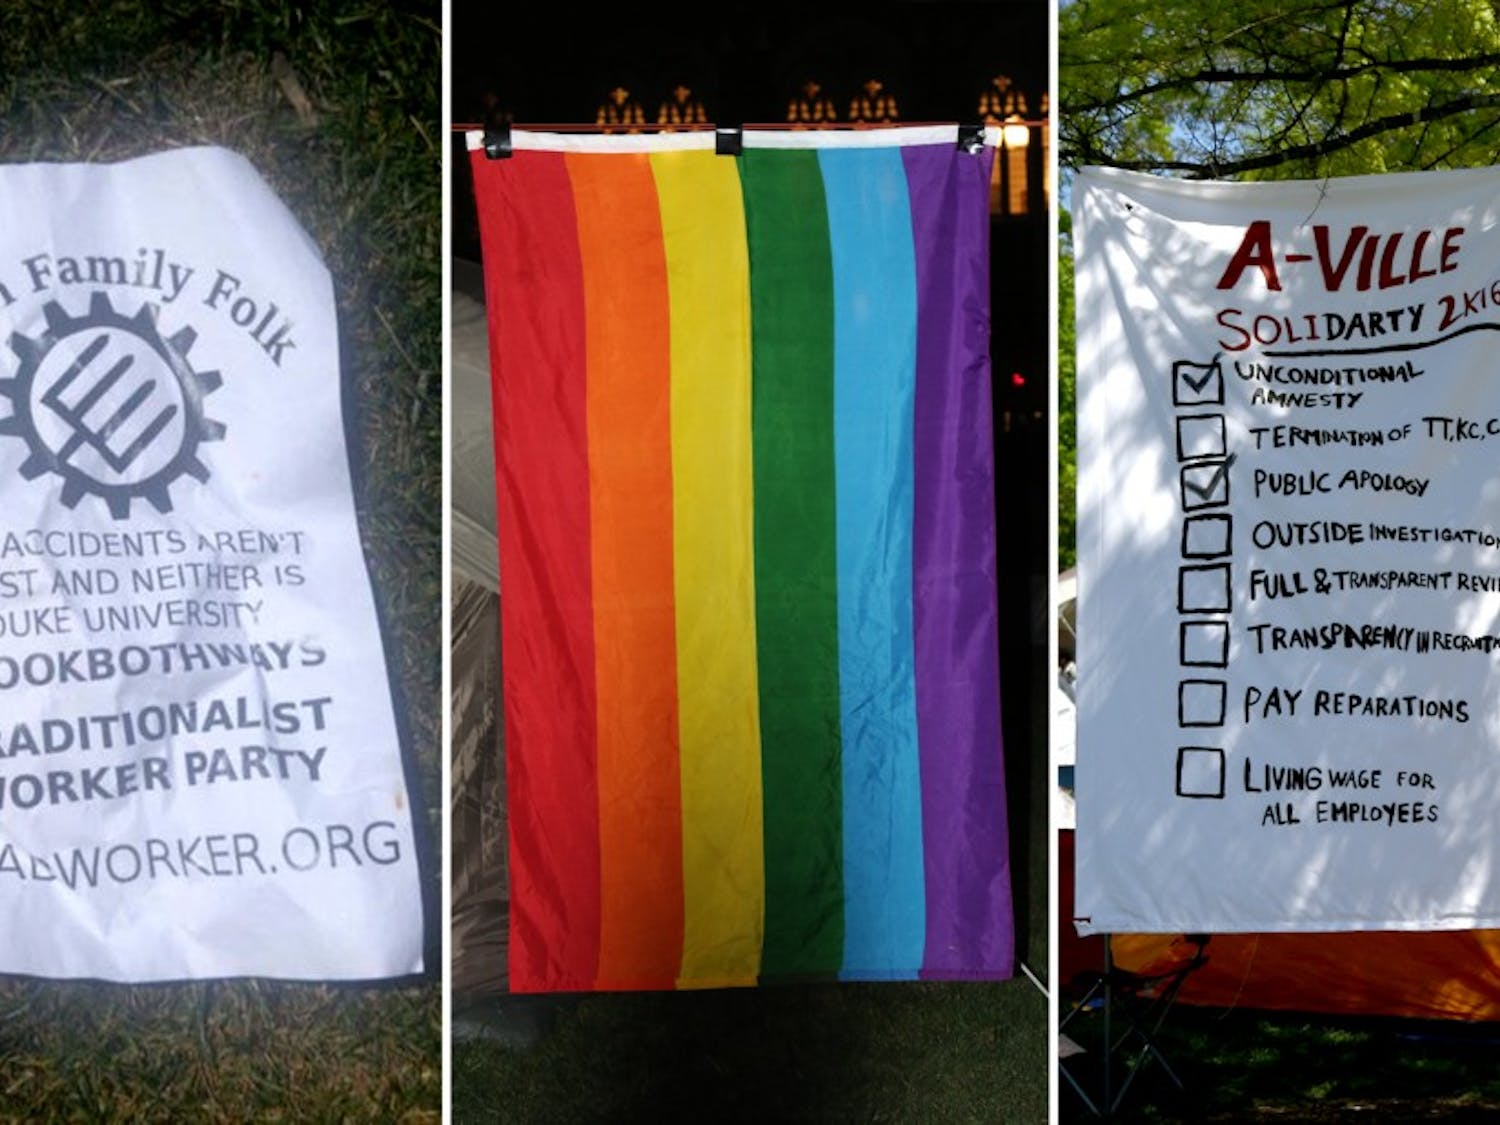 Protestors have expressed concern about recent acts of vandalism, including white supremacist propaganda and the removal of a pride flag.